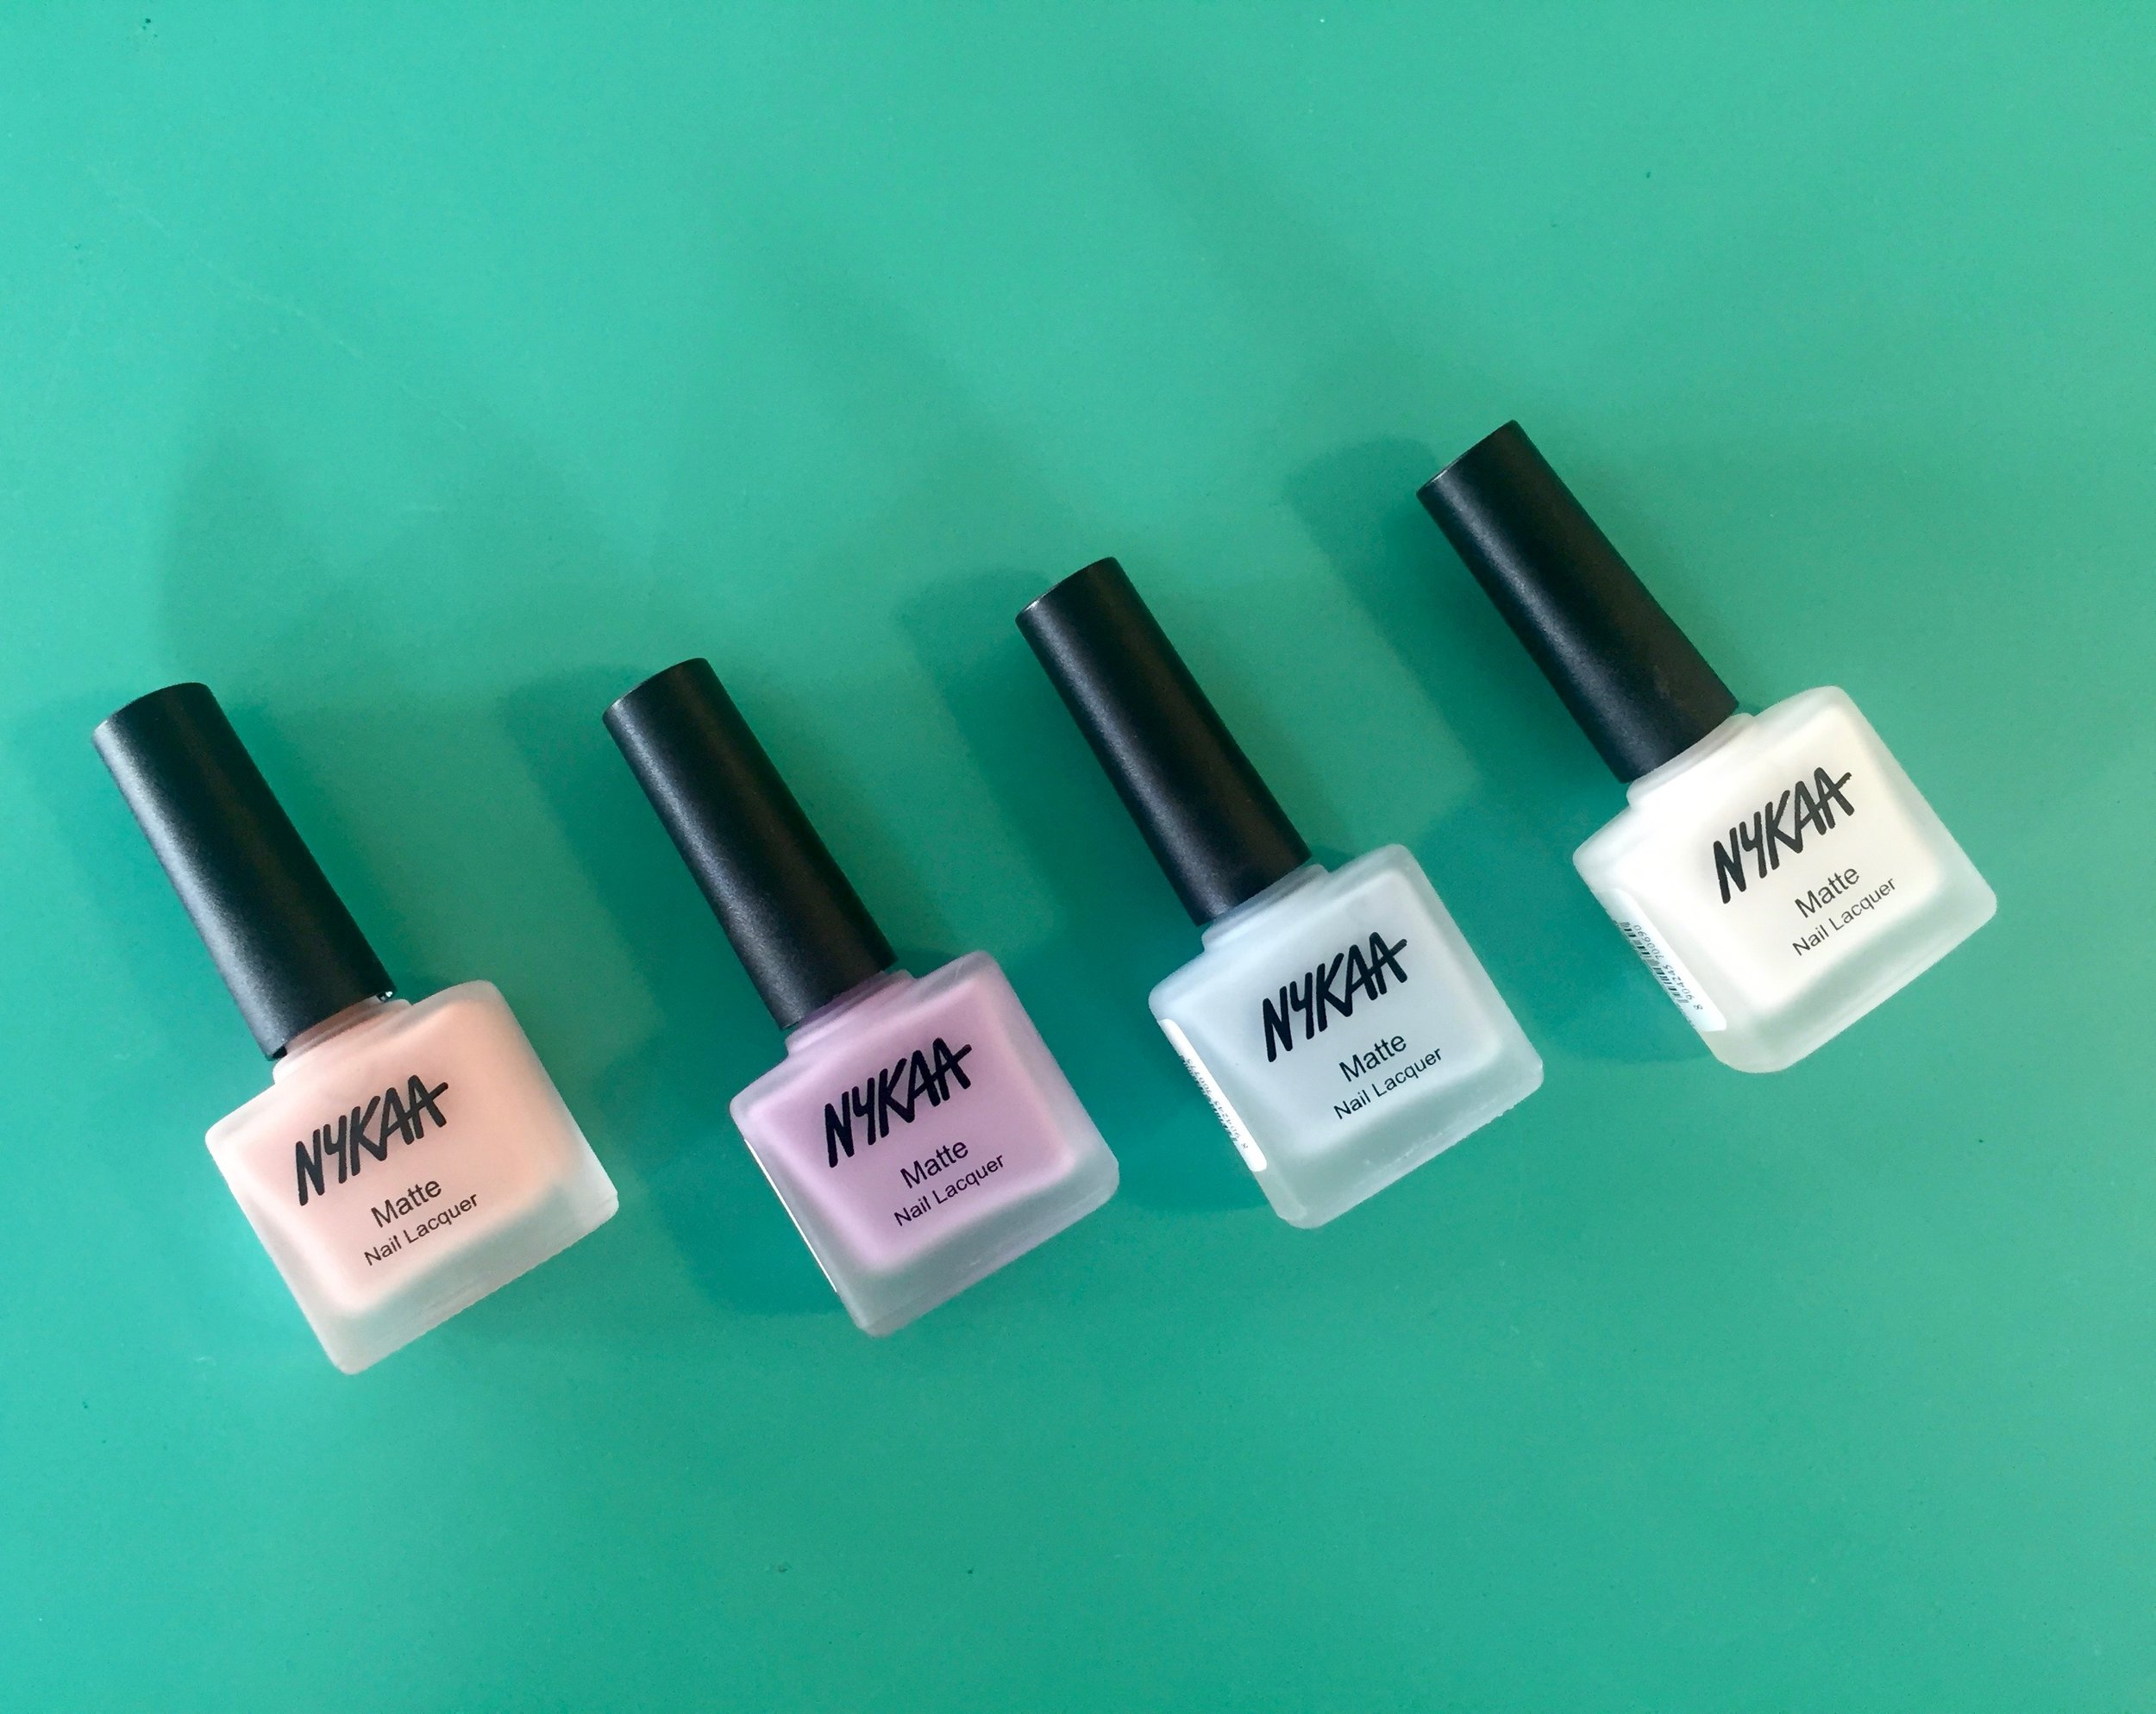 Nykaa Matte Nail Enamels in Pink Meringue, Lavender Panna Cotta, Blueberry Macaron and White Chocolate Ganache